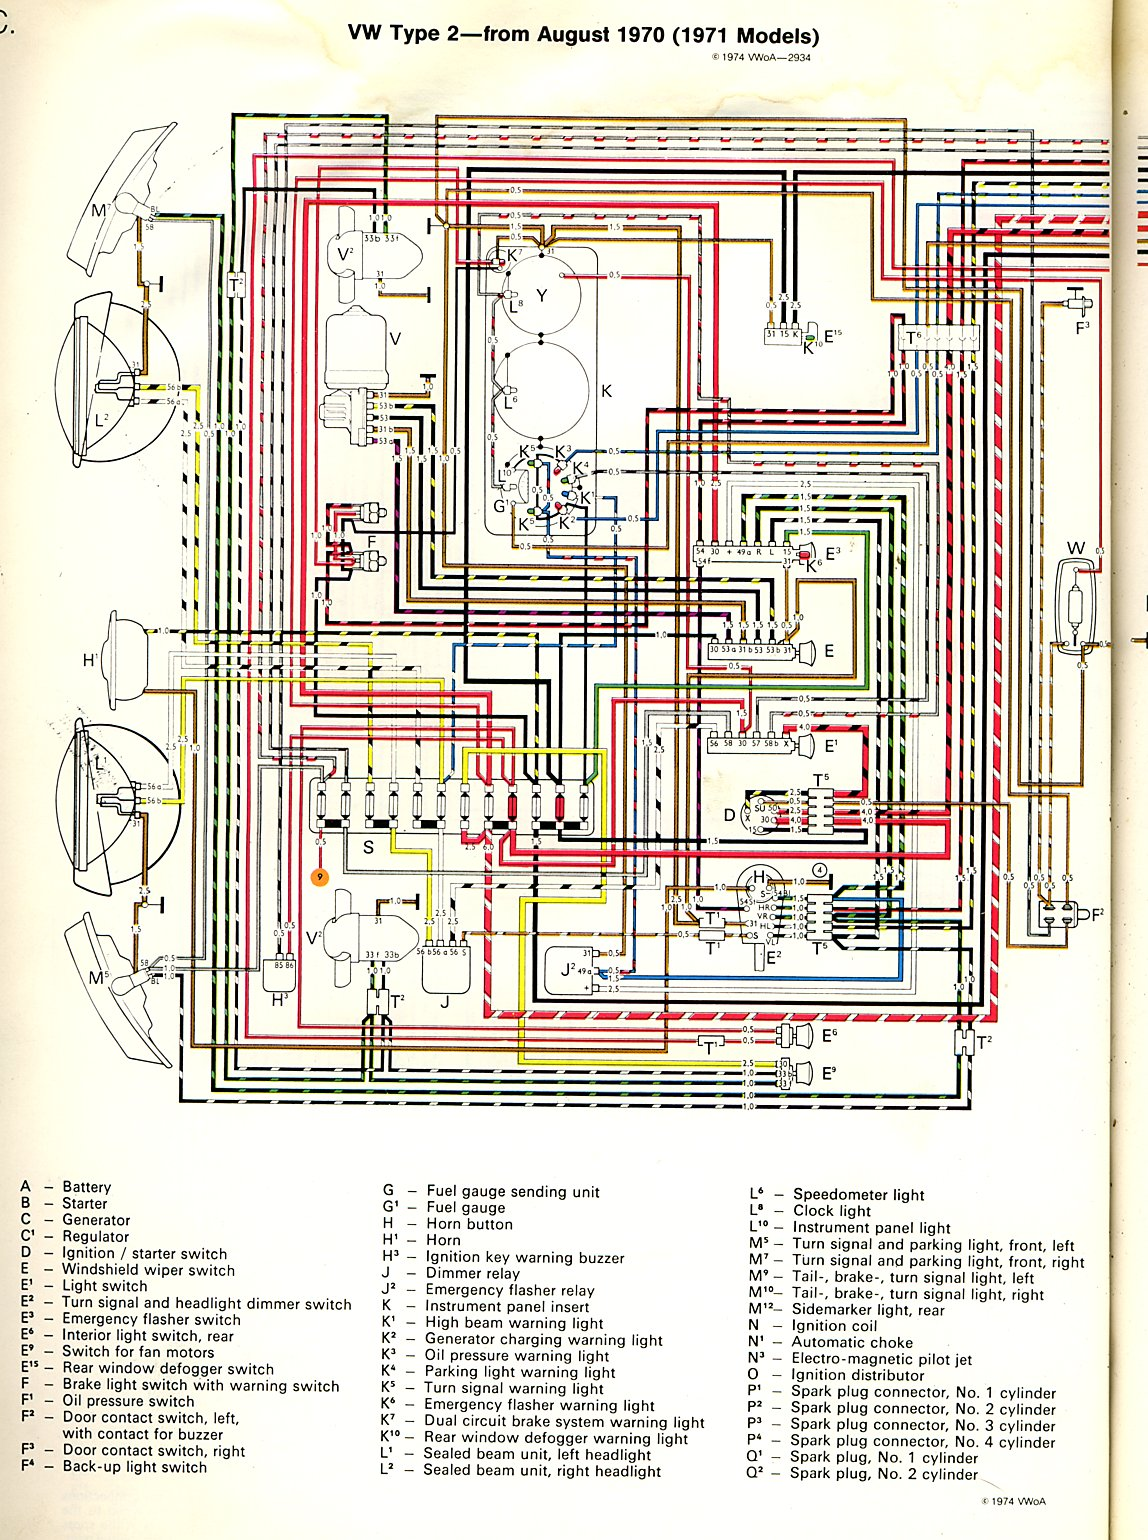 baybus_71a vw bus wiring diagram 1965 vw bus wiring diagram \u2022 wiring diagrams 1965 vw bus wiring harness at cos-gaming.co